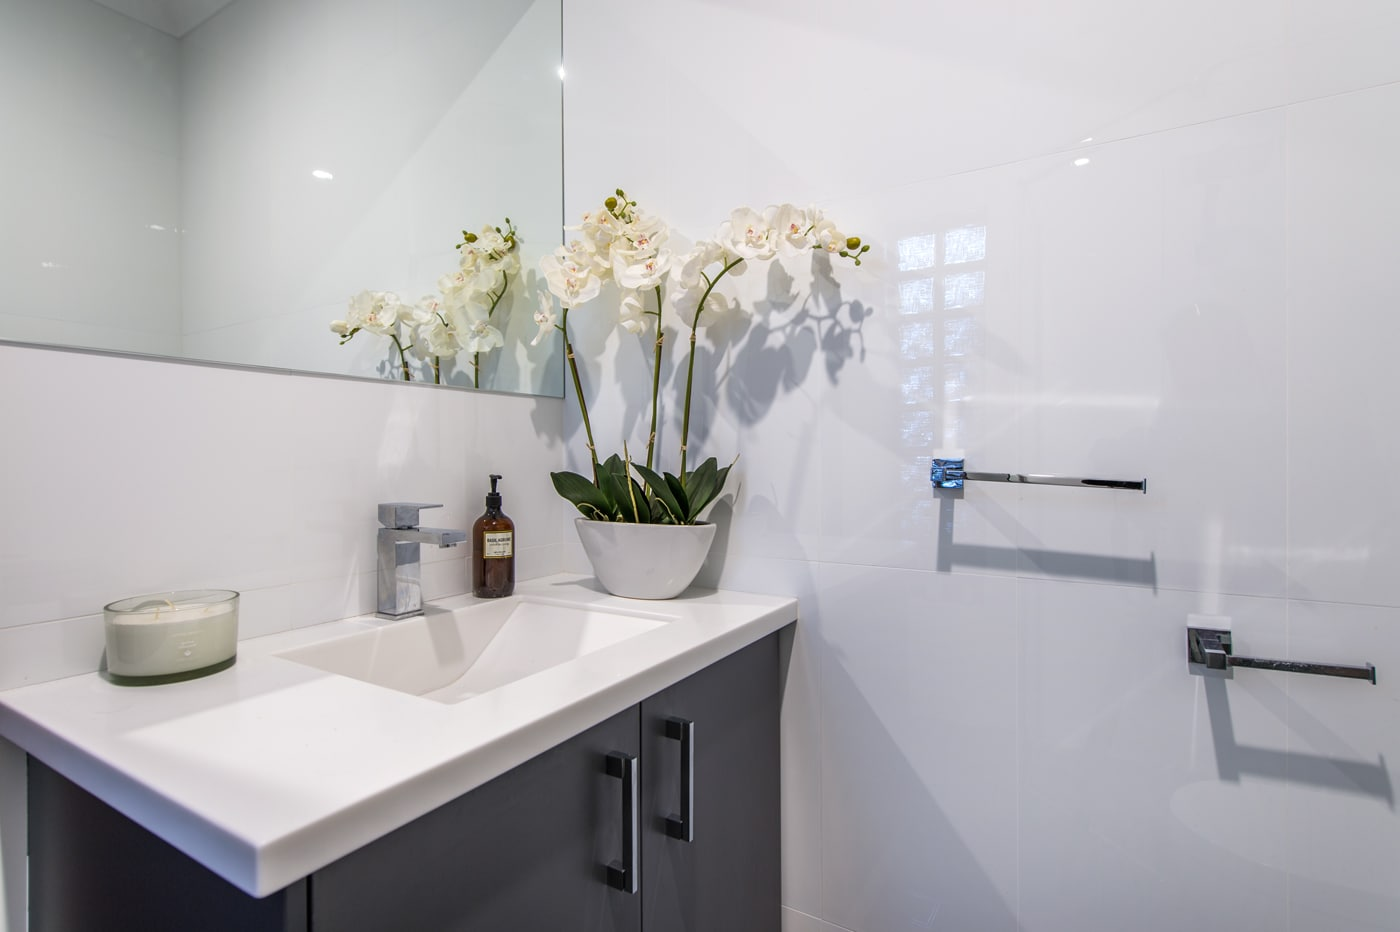 Bathroom Sinks Joondalup veejay's - kitchen renovations & designs - joondalup